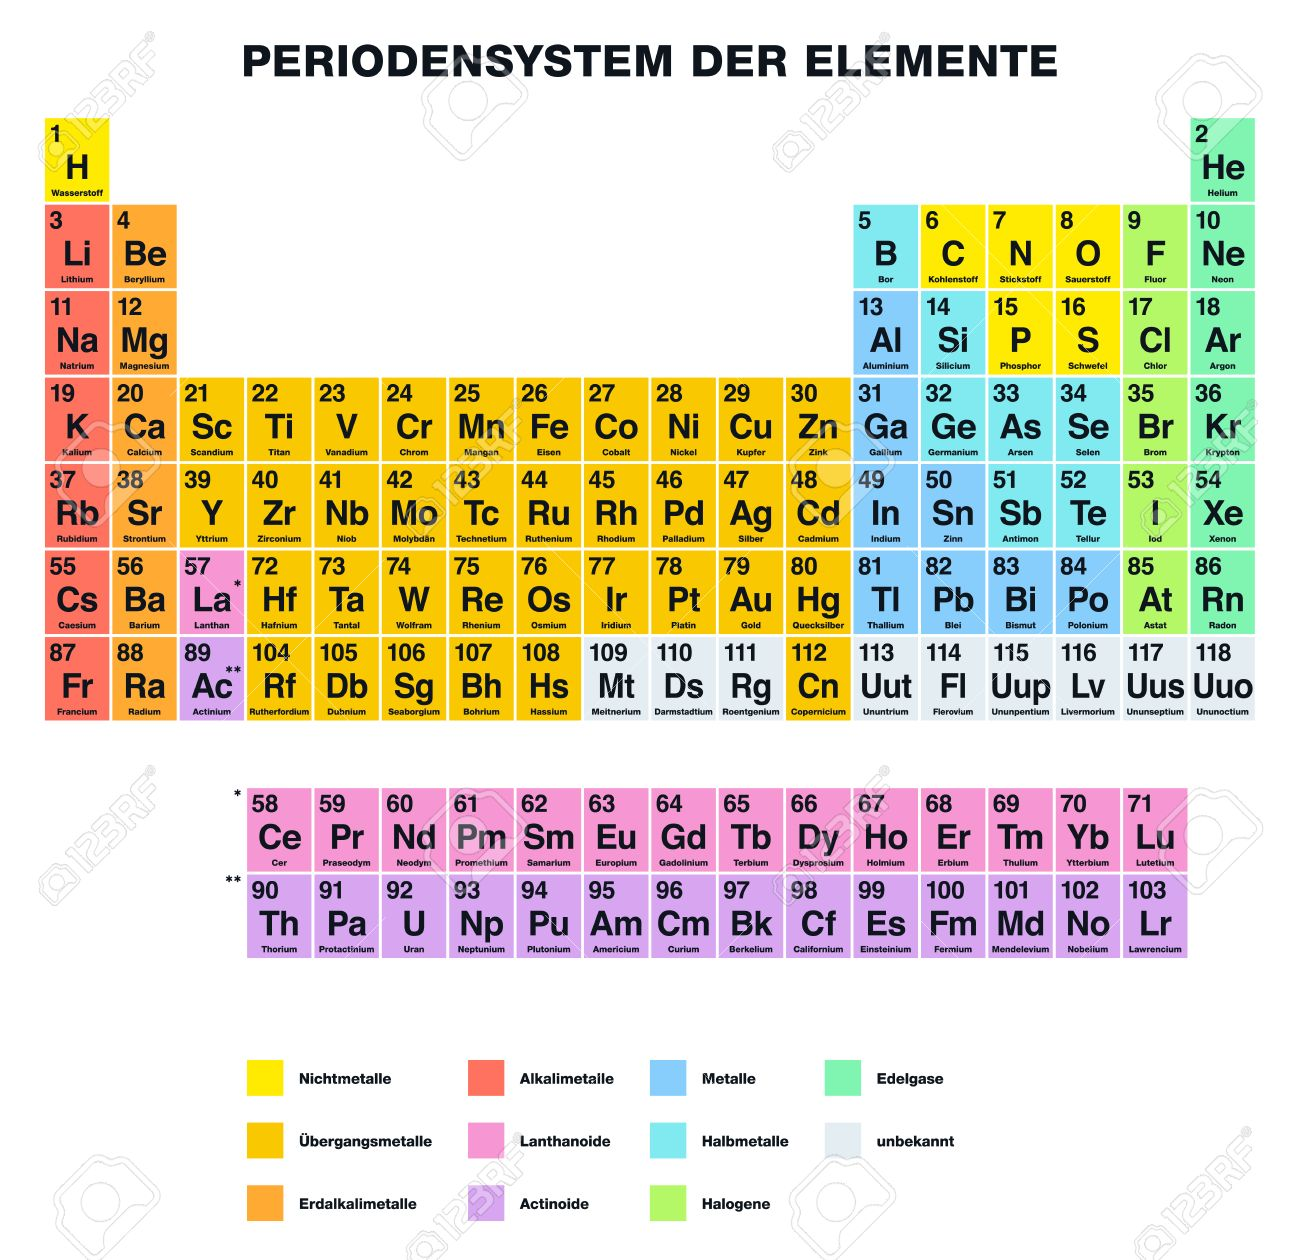 Periodic table labeling images periodic table images periodic table of the elements german labeling tabular periodic table of the elements german labeling tabular gamestrikefo Image collections